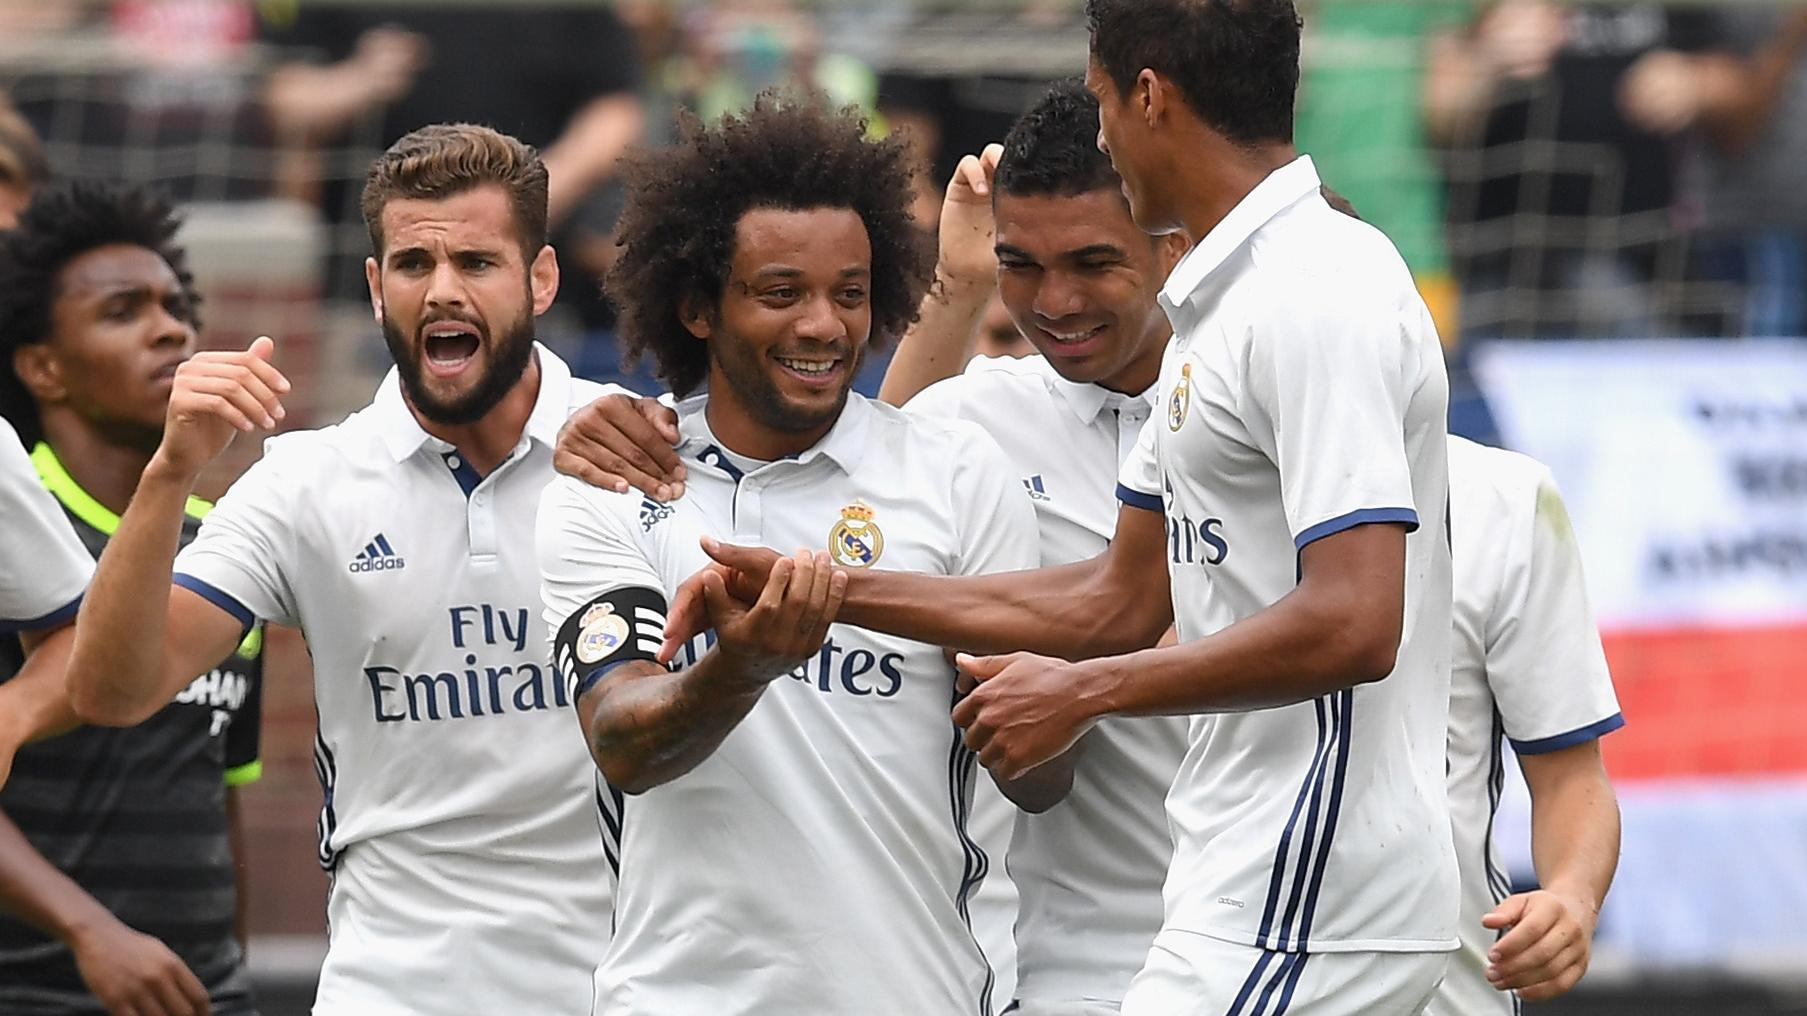 Real Madrid jumps out early, top Chelsea